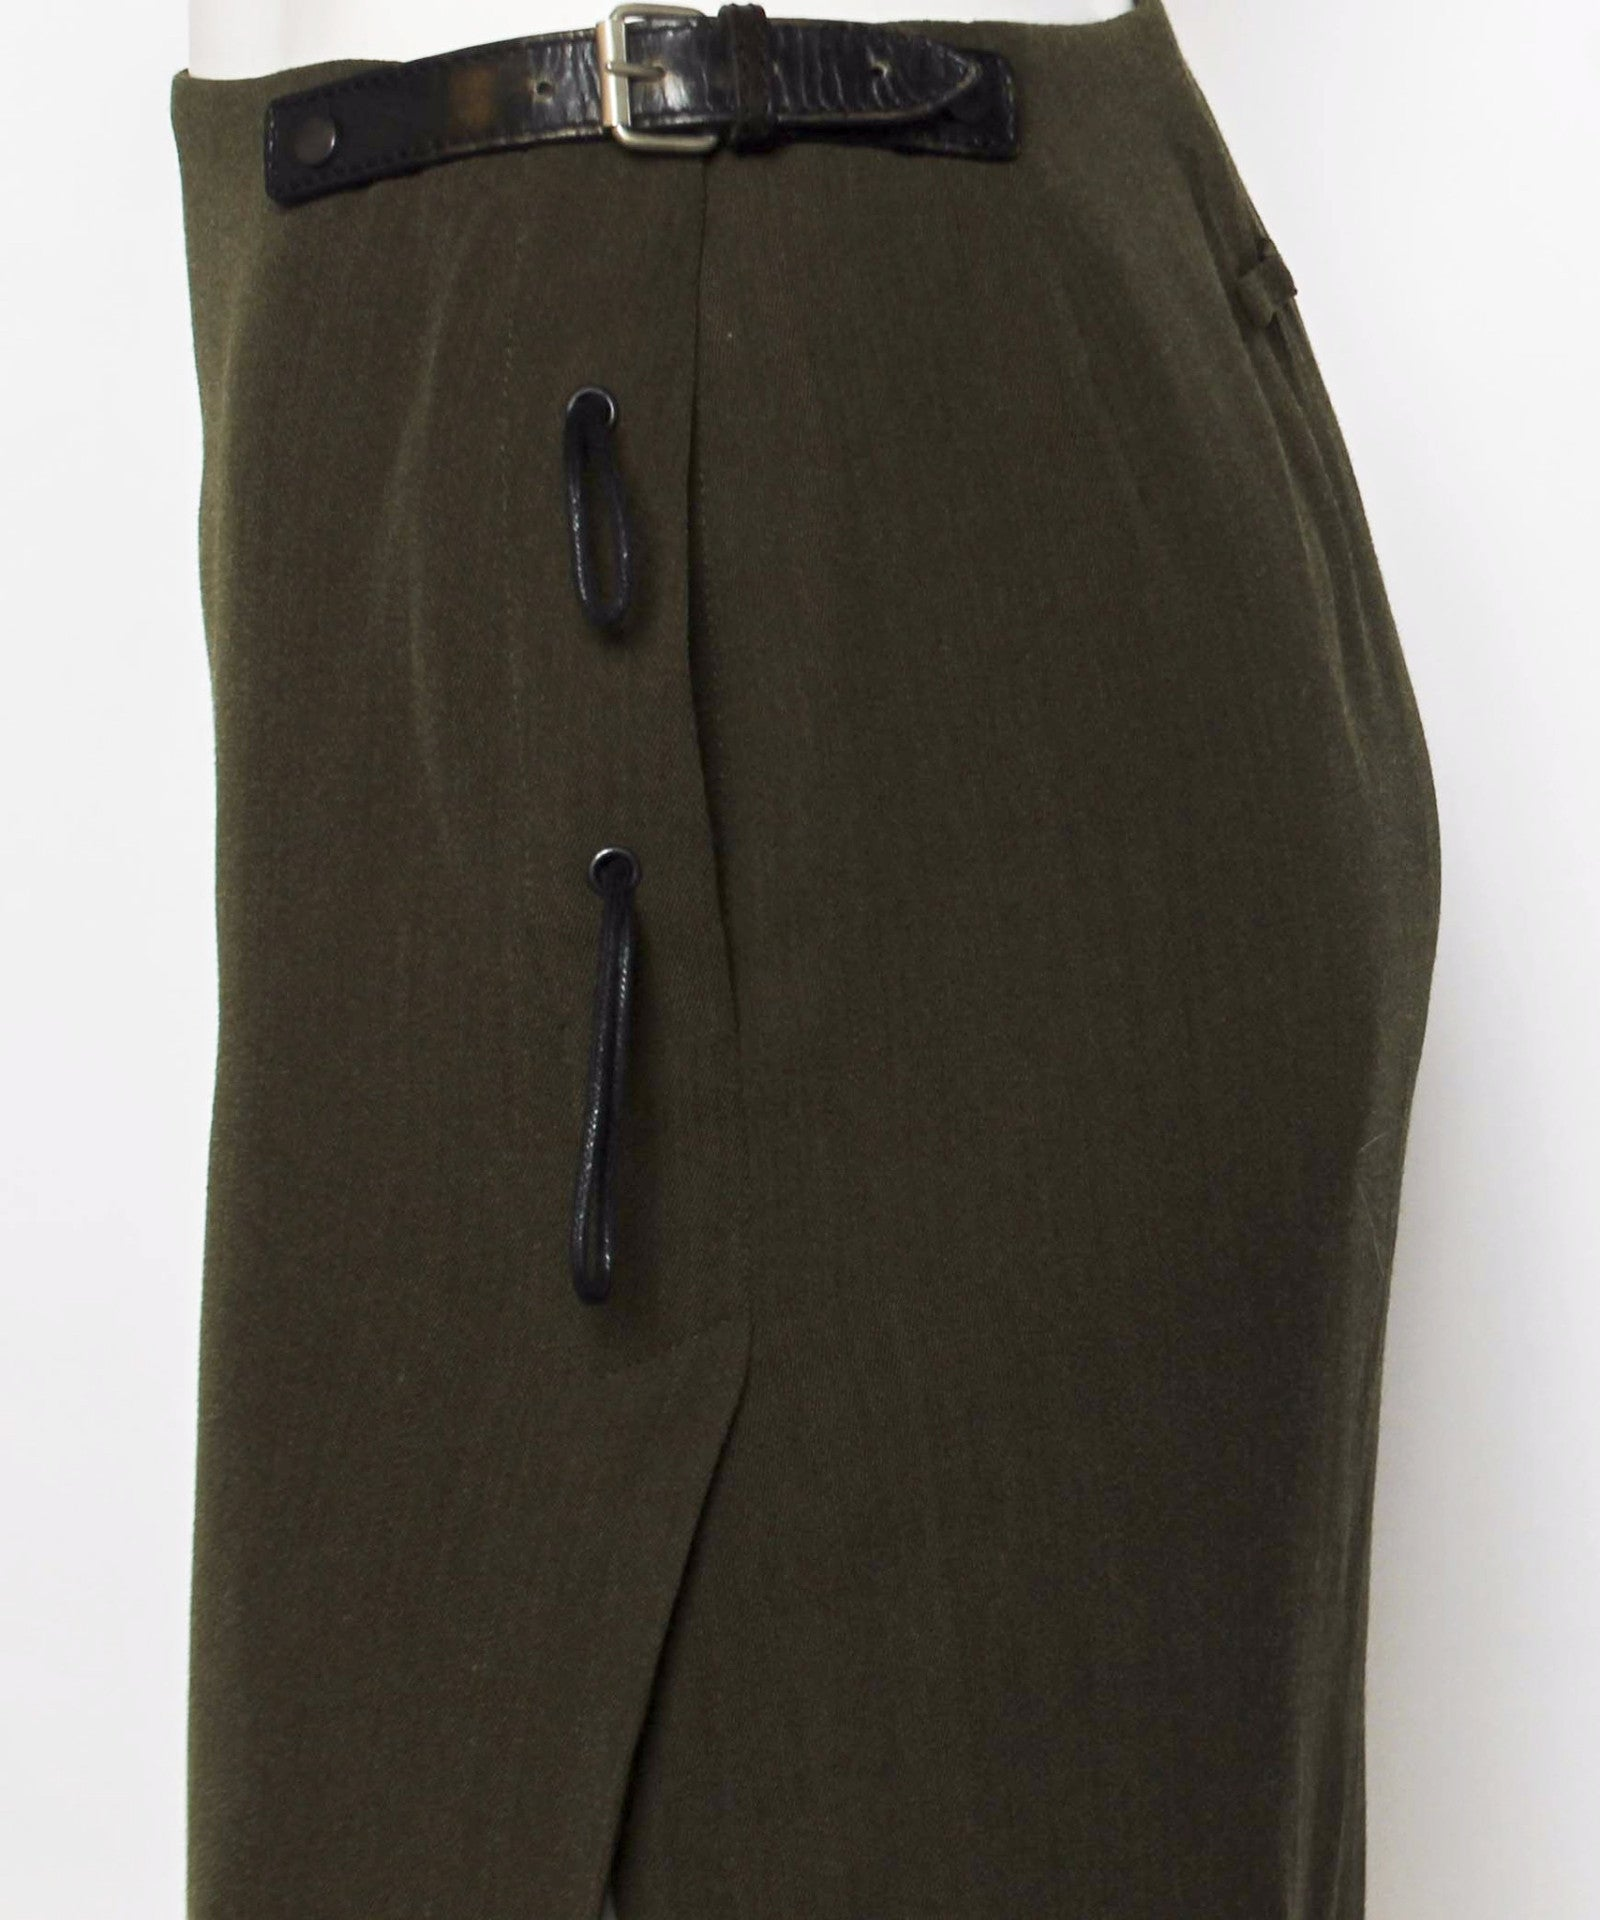 Jean Paul Gaultier 90's Green Wool Skirt - C.Madeleine's